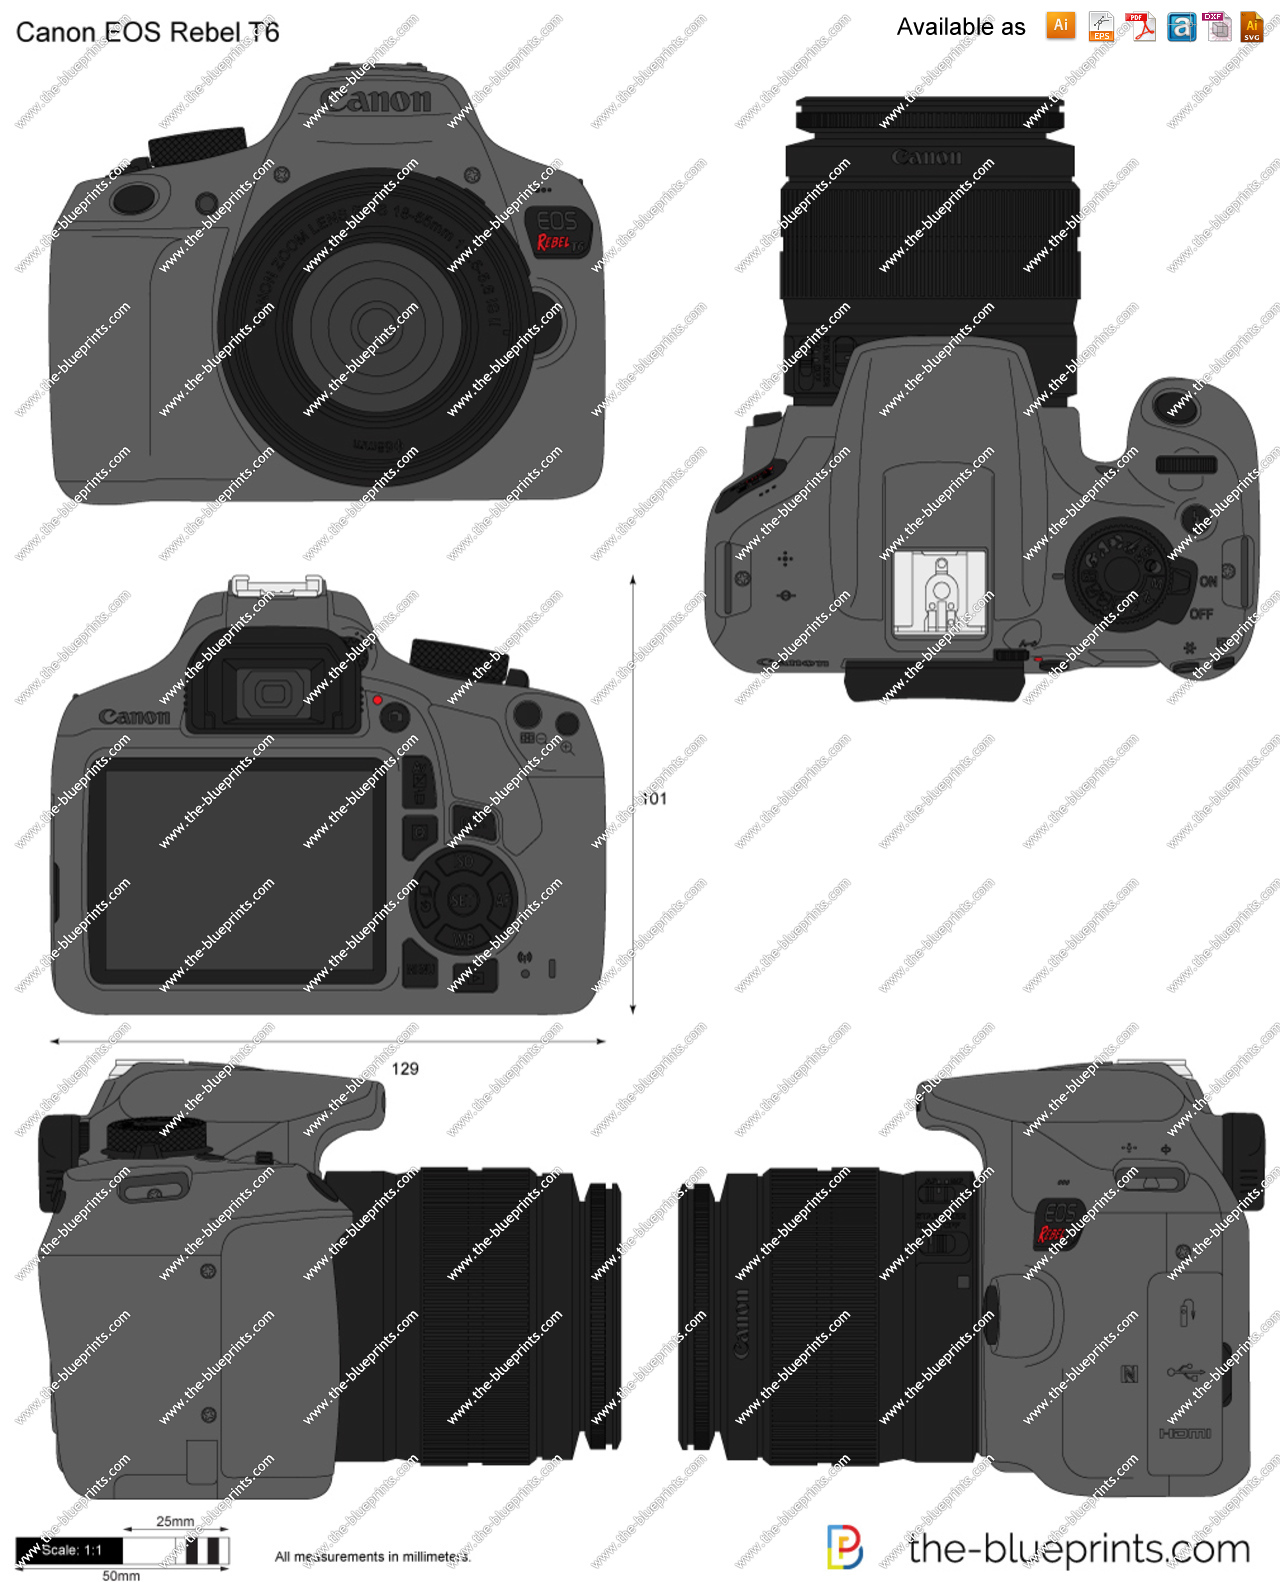 Canon EOS Rebel T6 vector drawing.